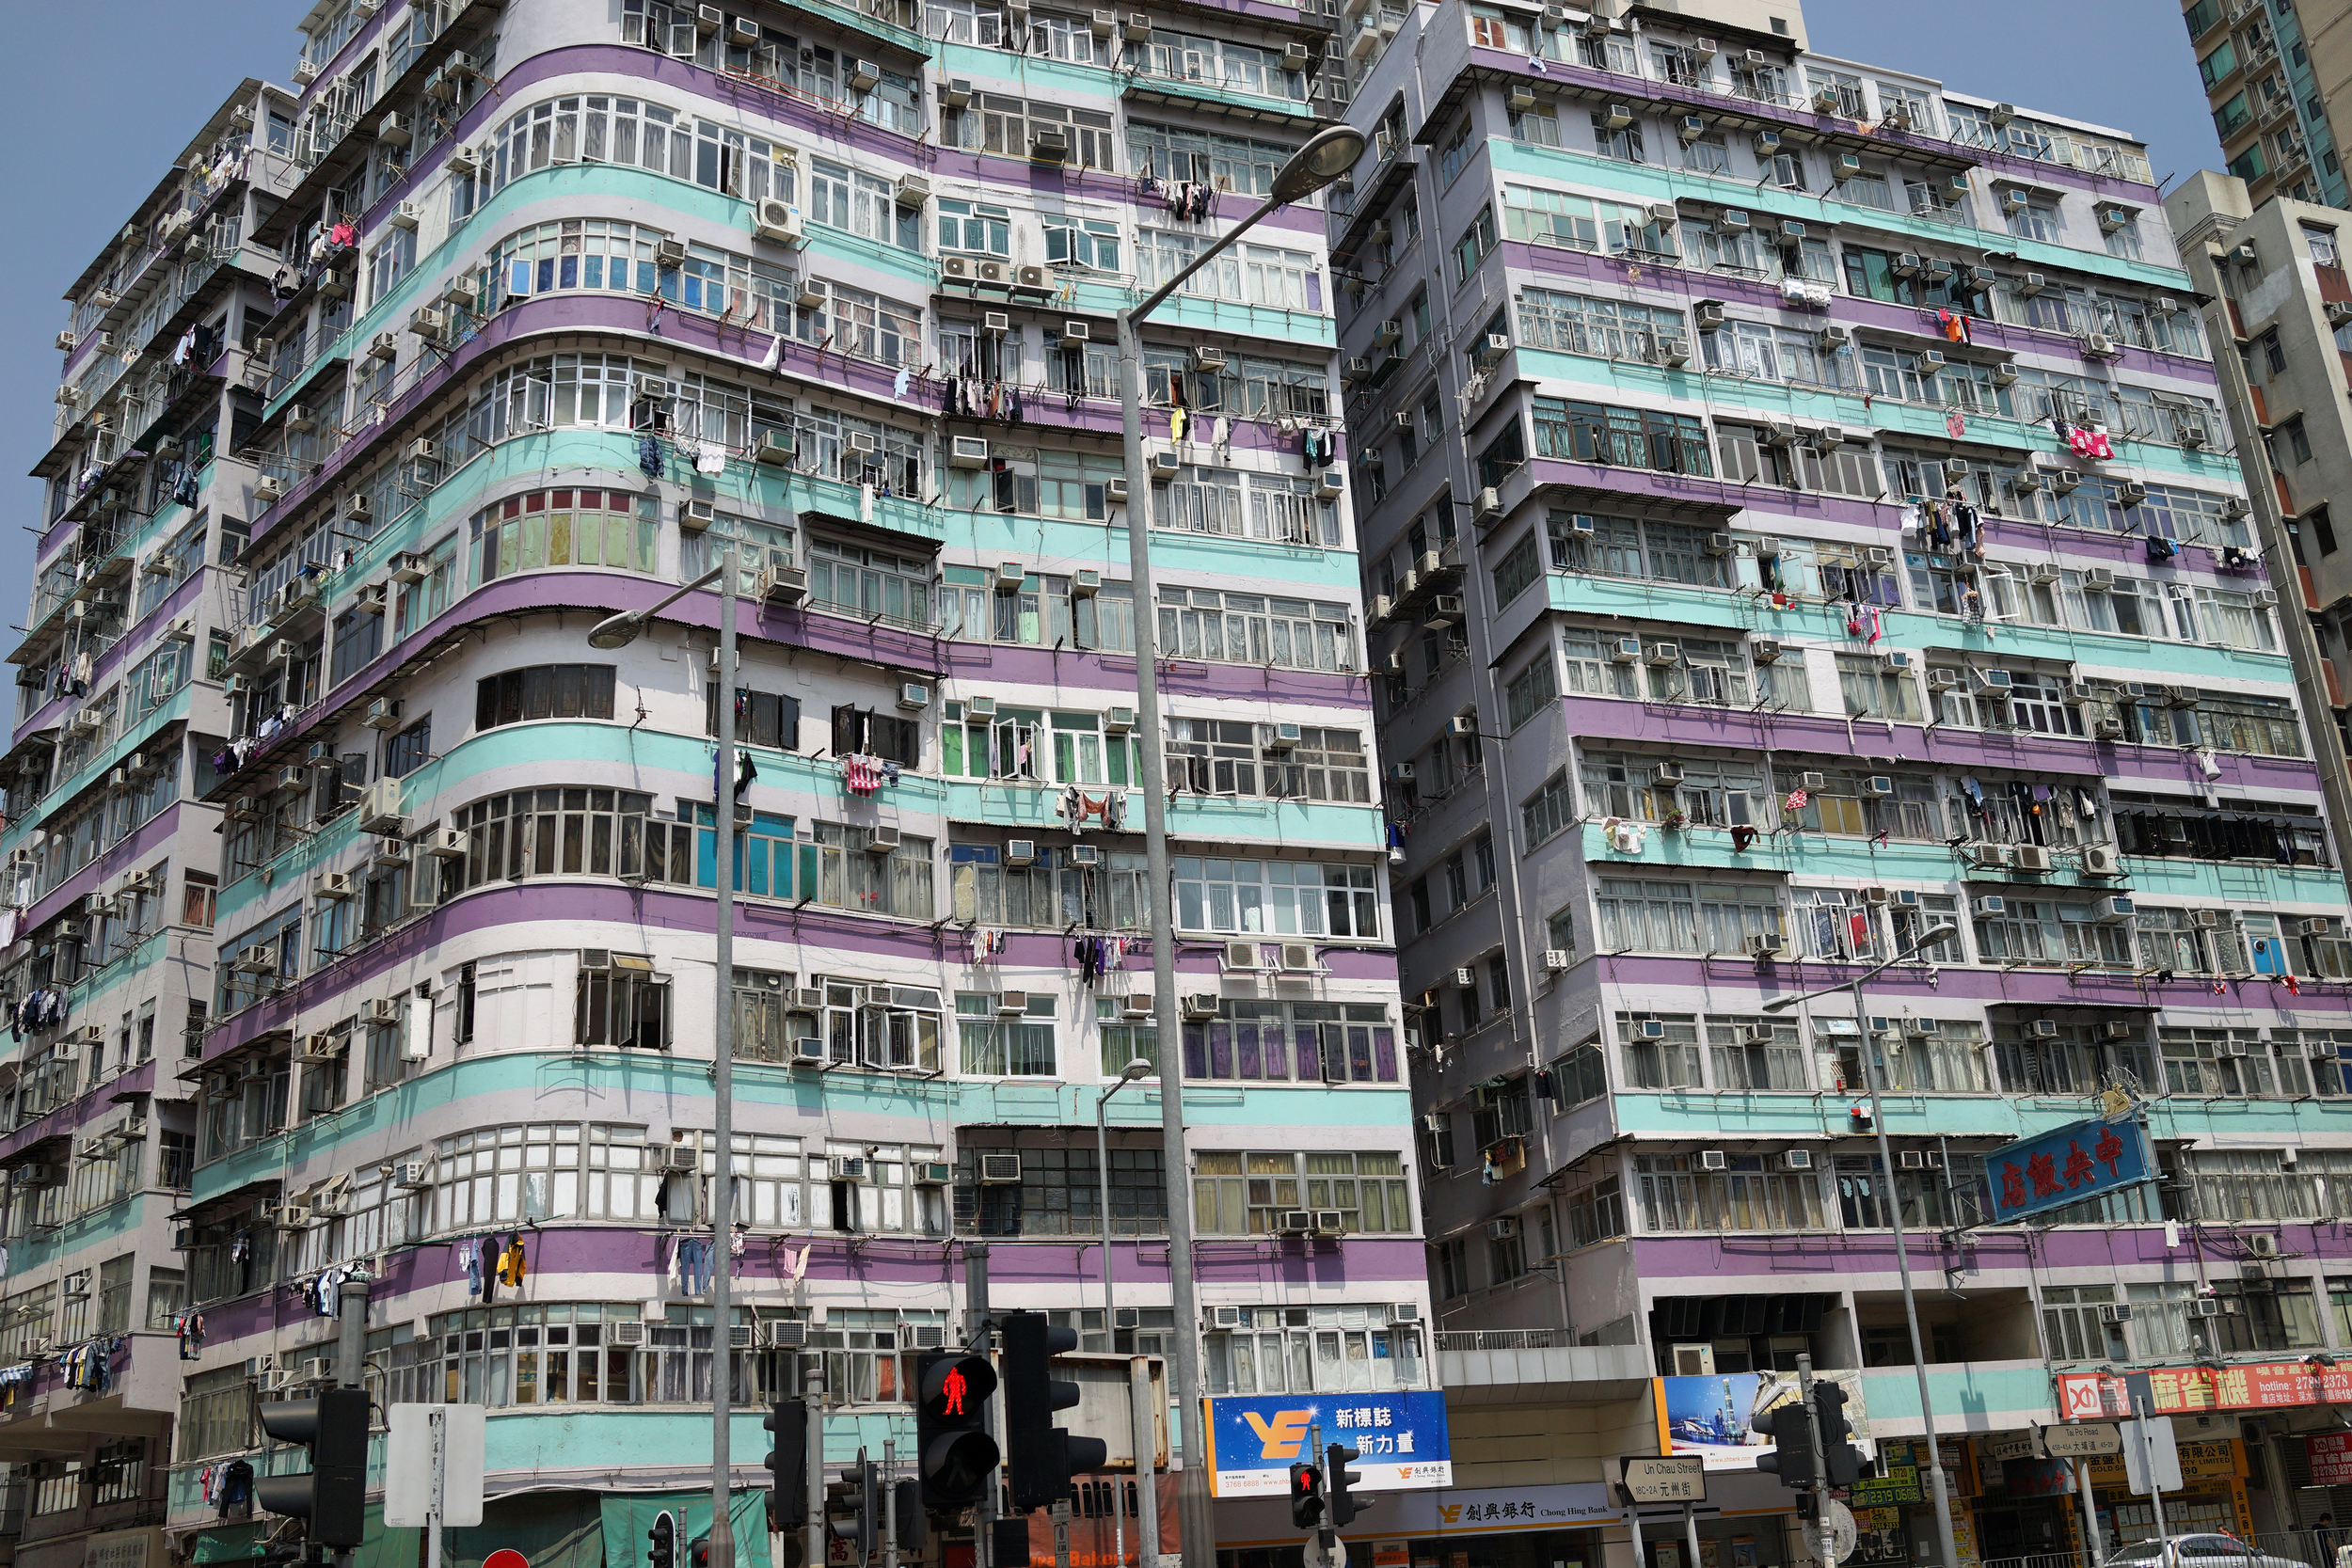 A fairly typical apartment block in Sham Shui Po in Kowloon, one of the poorest neighbourhoods in Hong Kong.